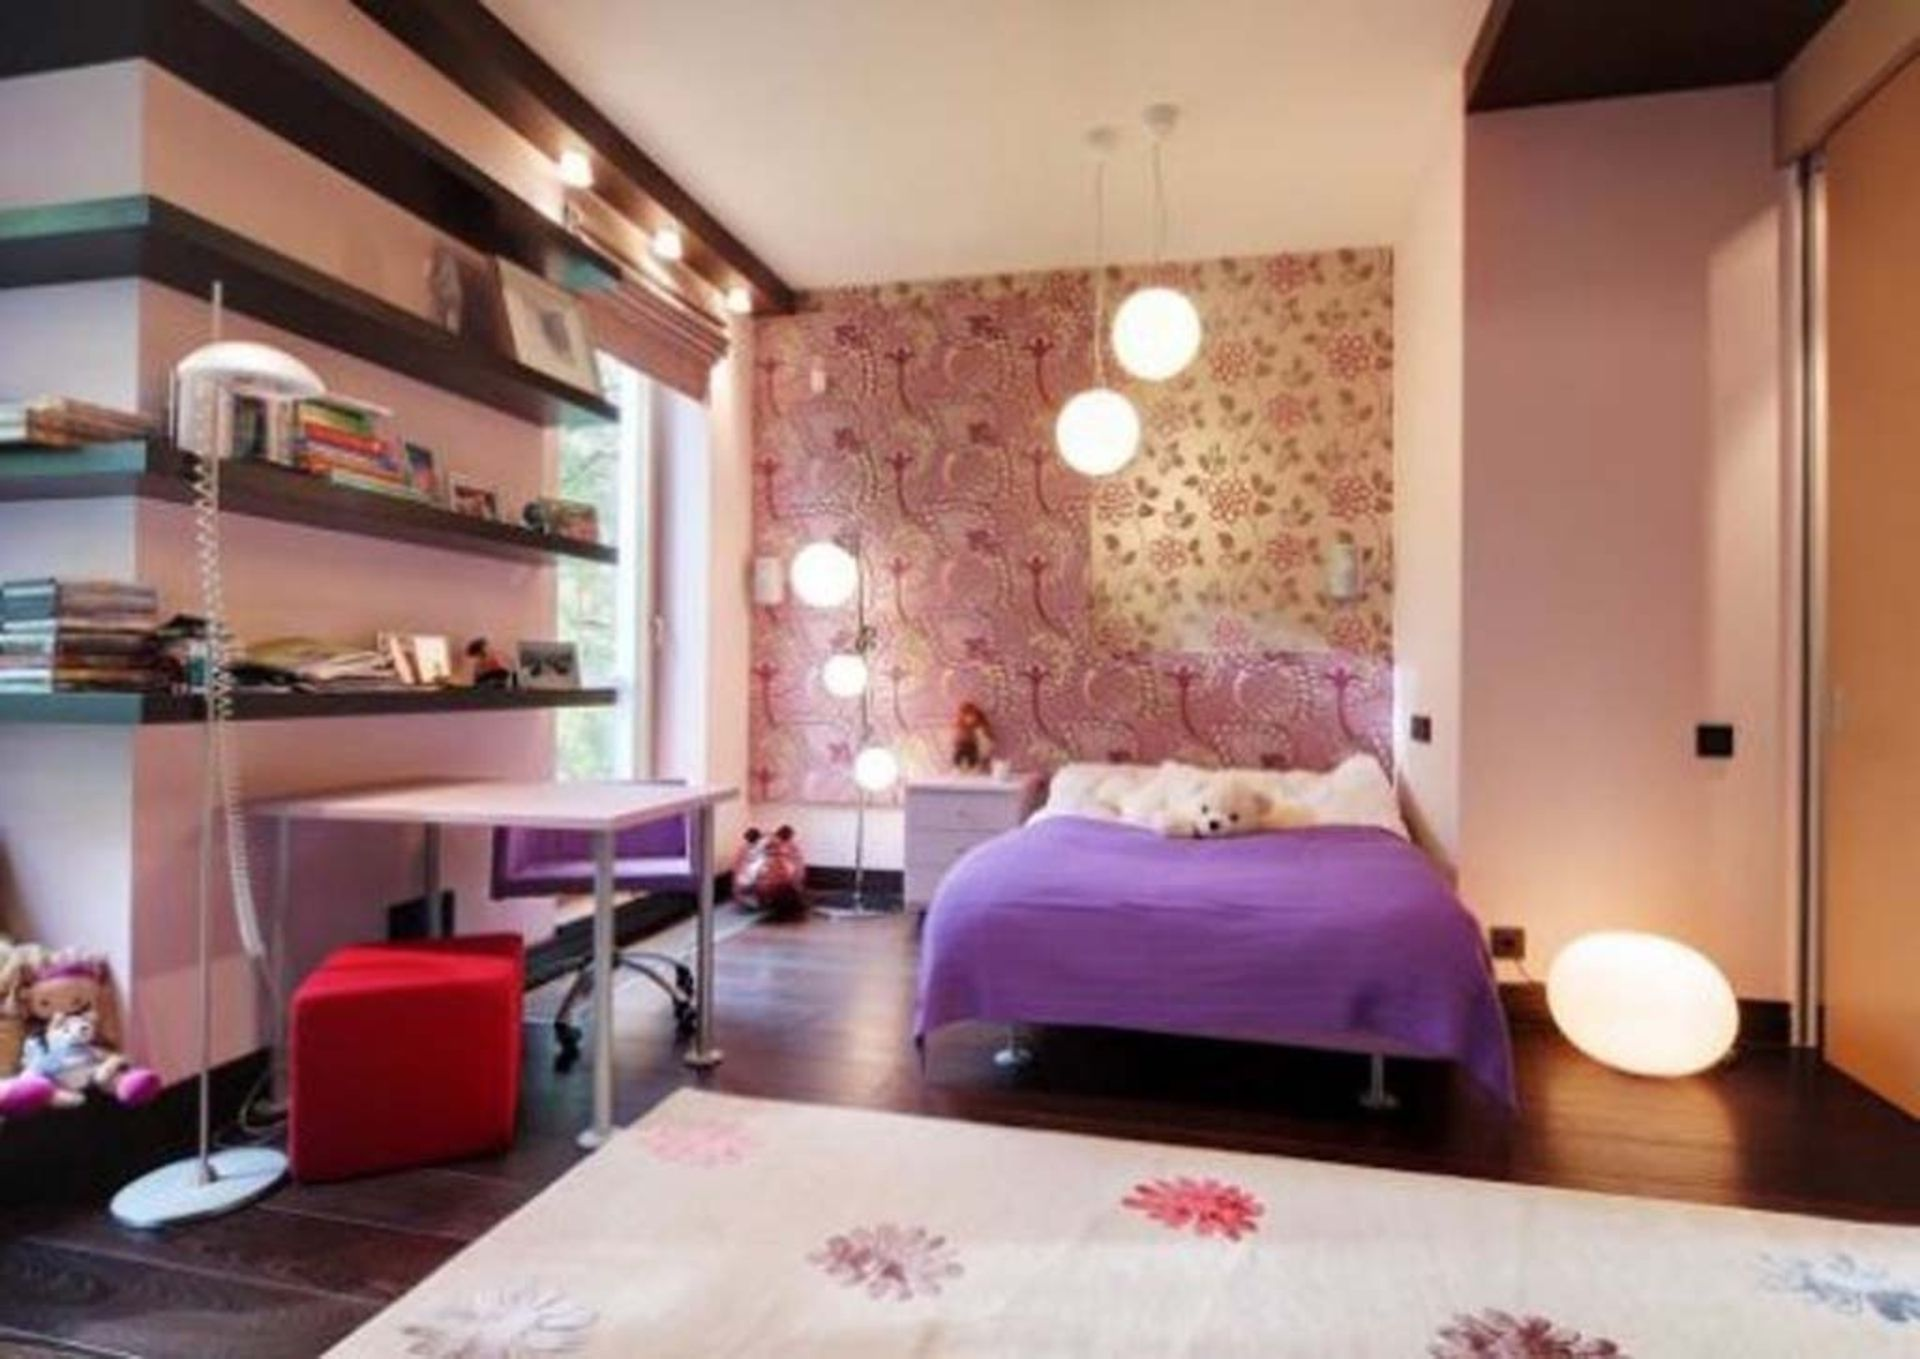 Marvelous Decorating Teenage Girl Bedroom Walls Decoseecom Girls Bedroom .